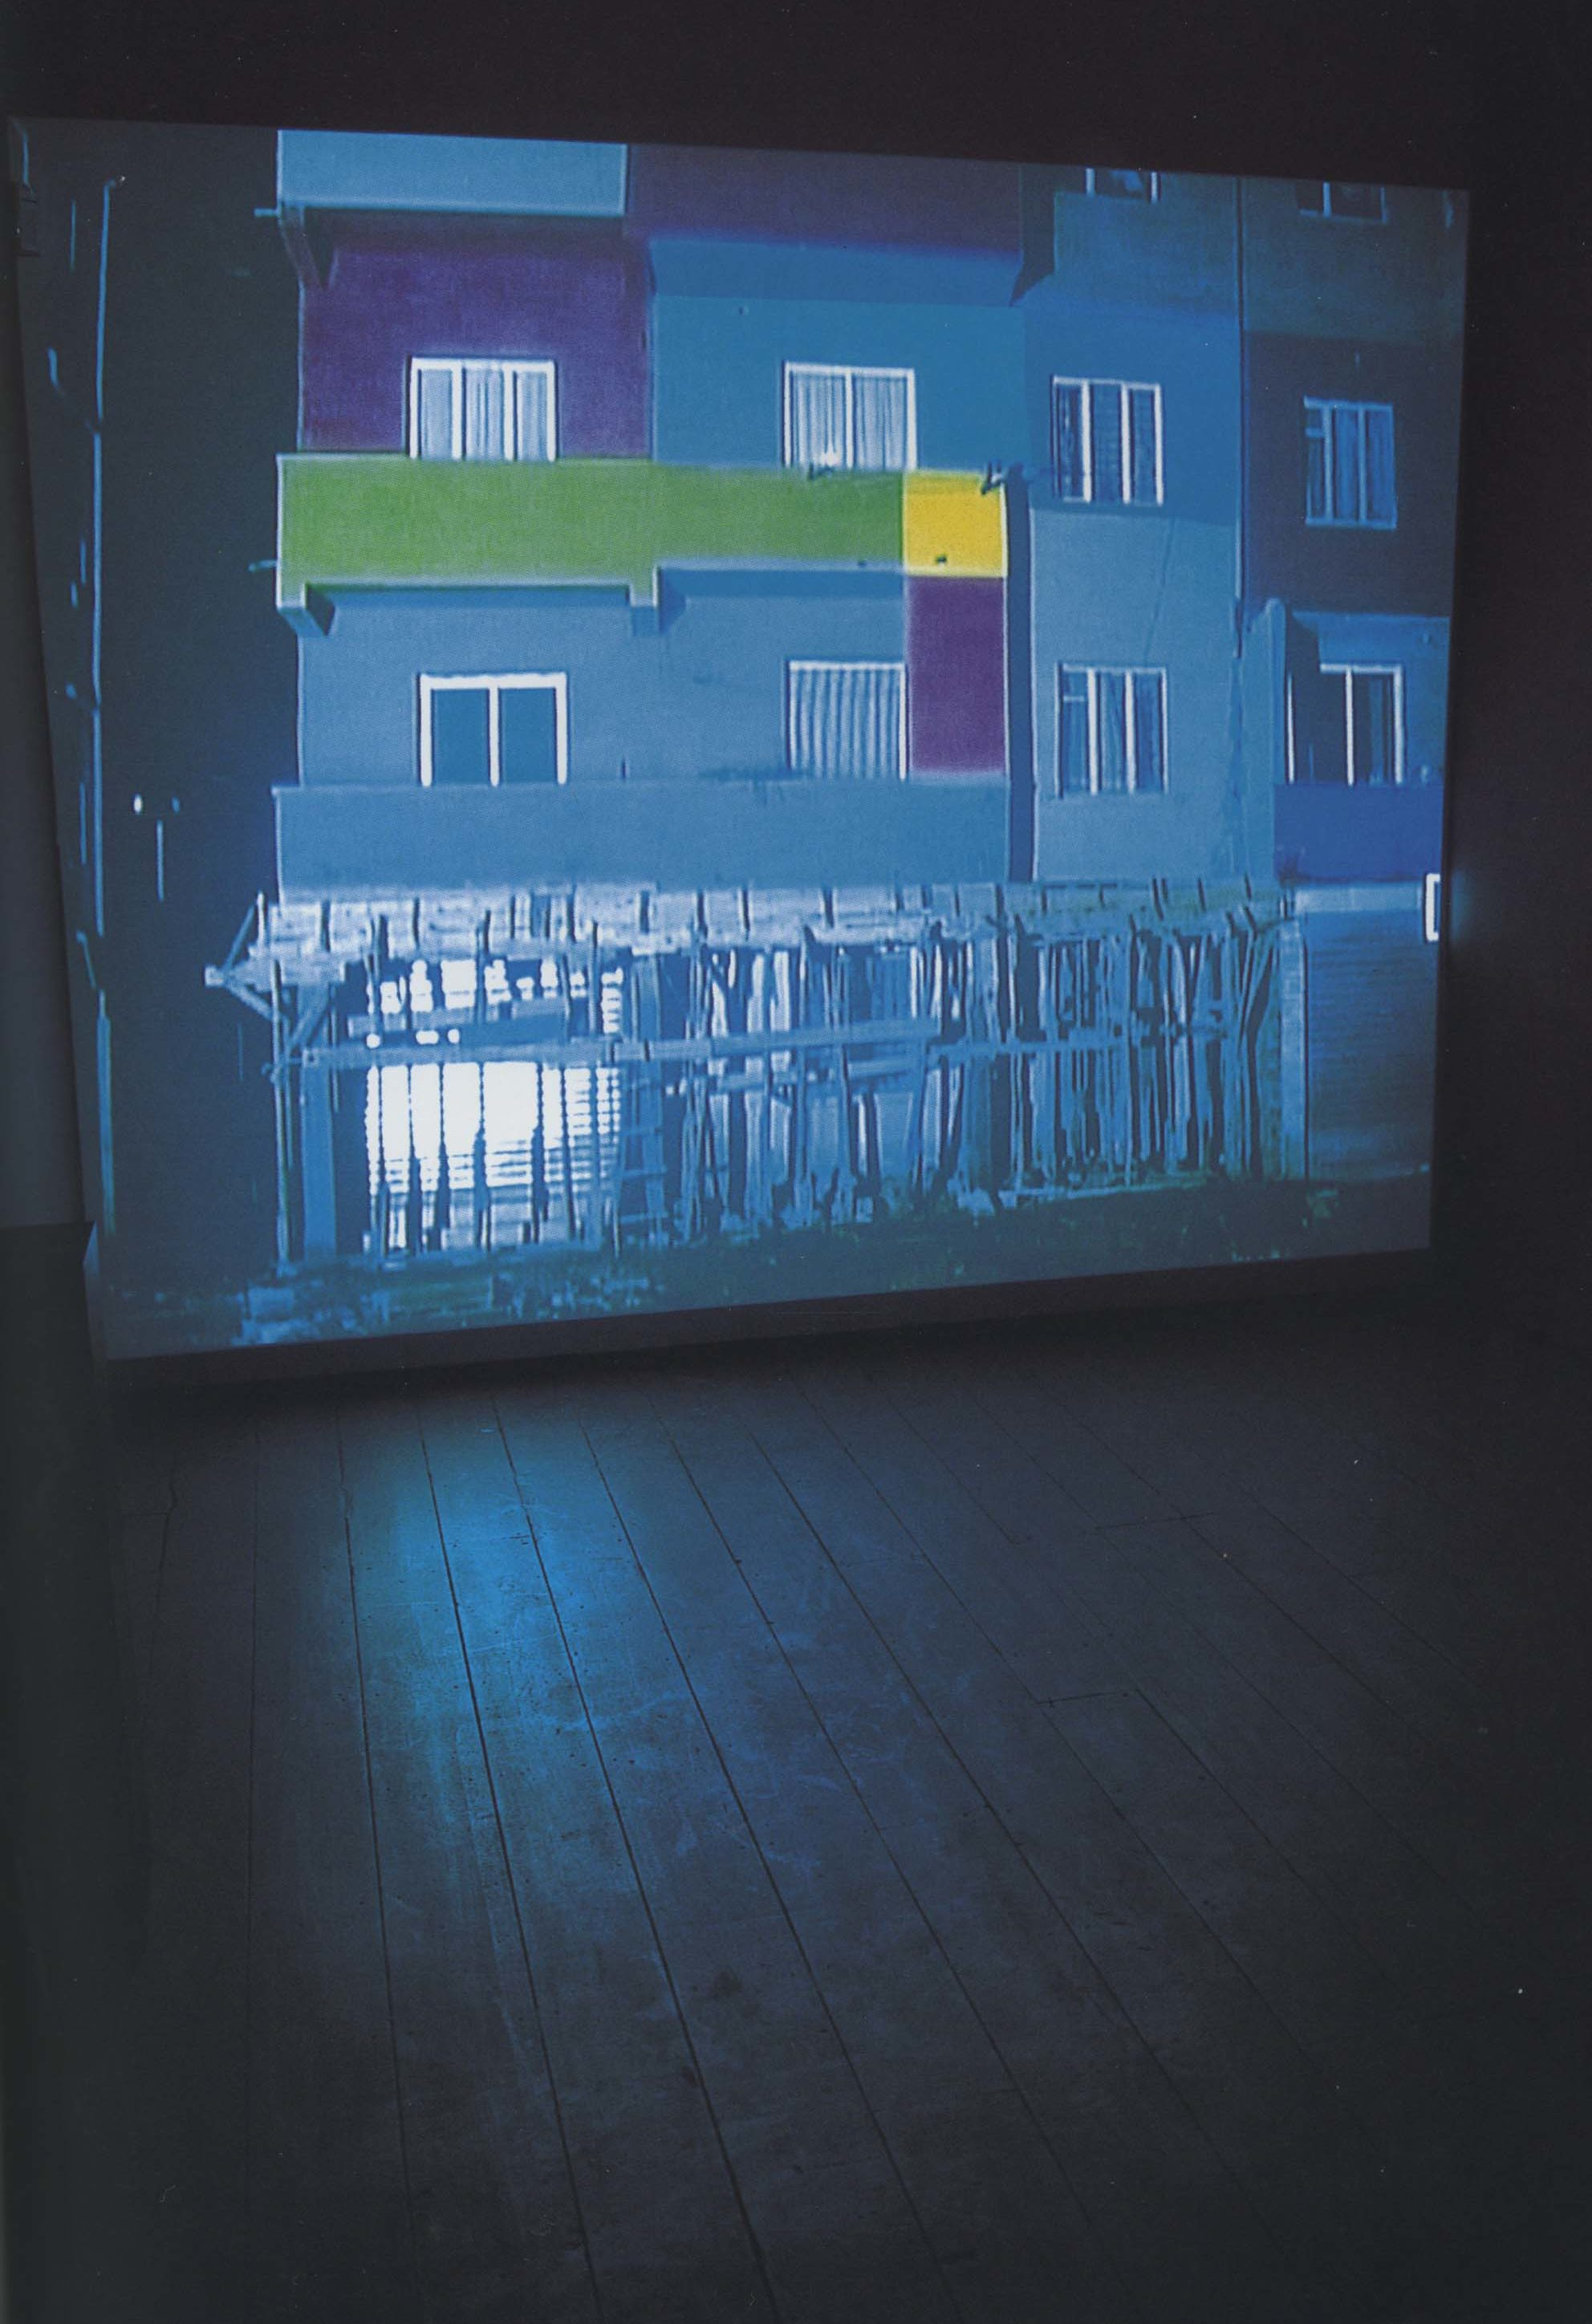 Anri Sala, Dammi i Colori, 2003, video projection with sound, 15 minutes 30 seconds, courtesy the artist and Hauser & Wirth, Zurich/ London